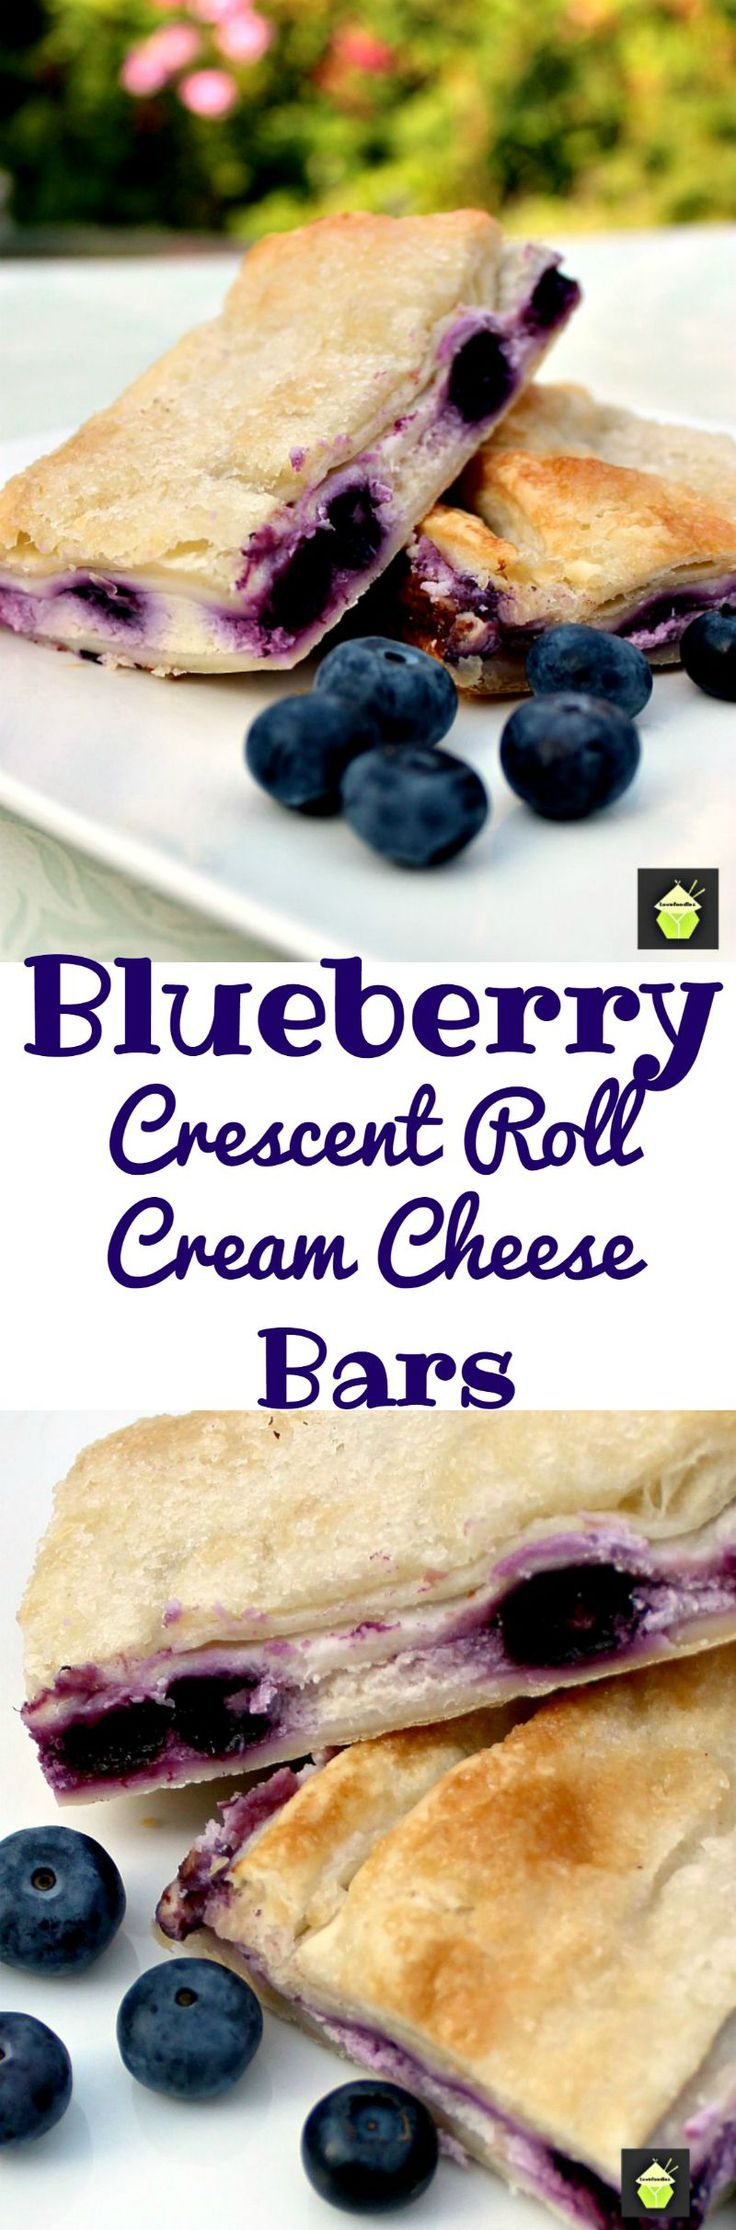 392053 Best Images About Dessert Recipes On Pinterest